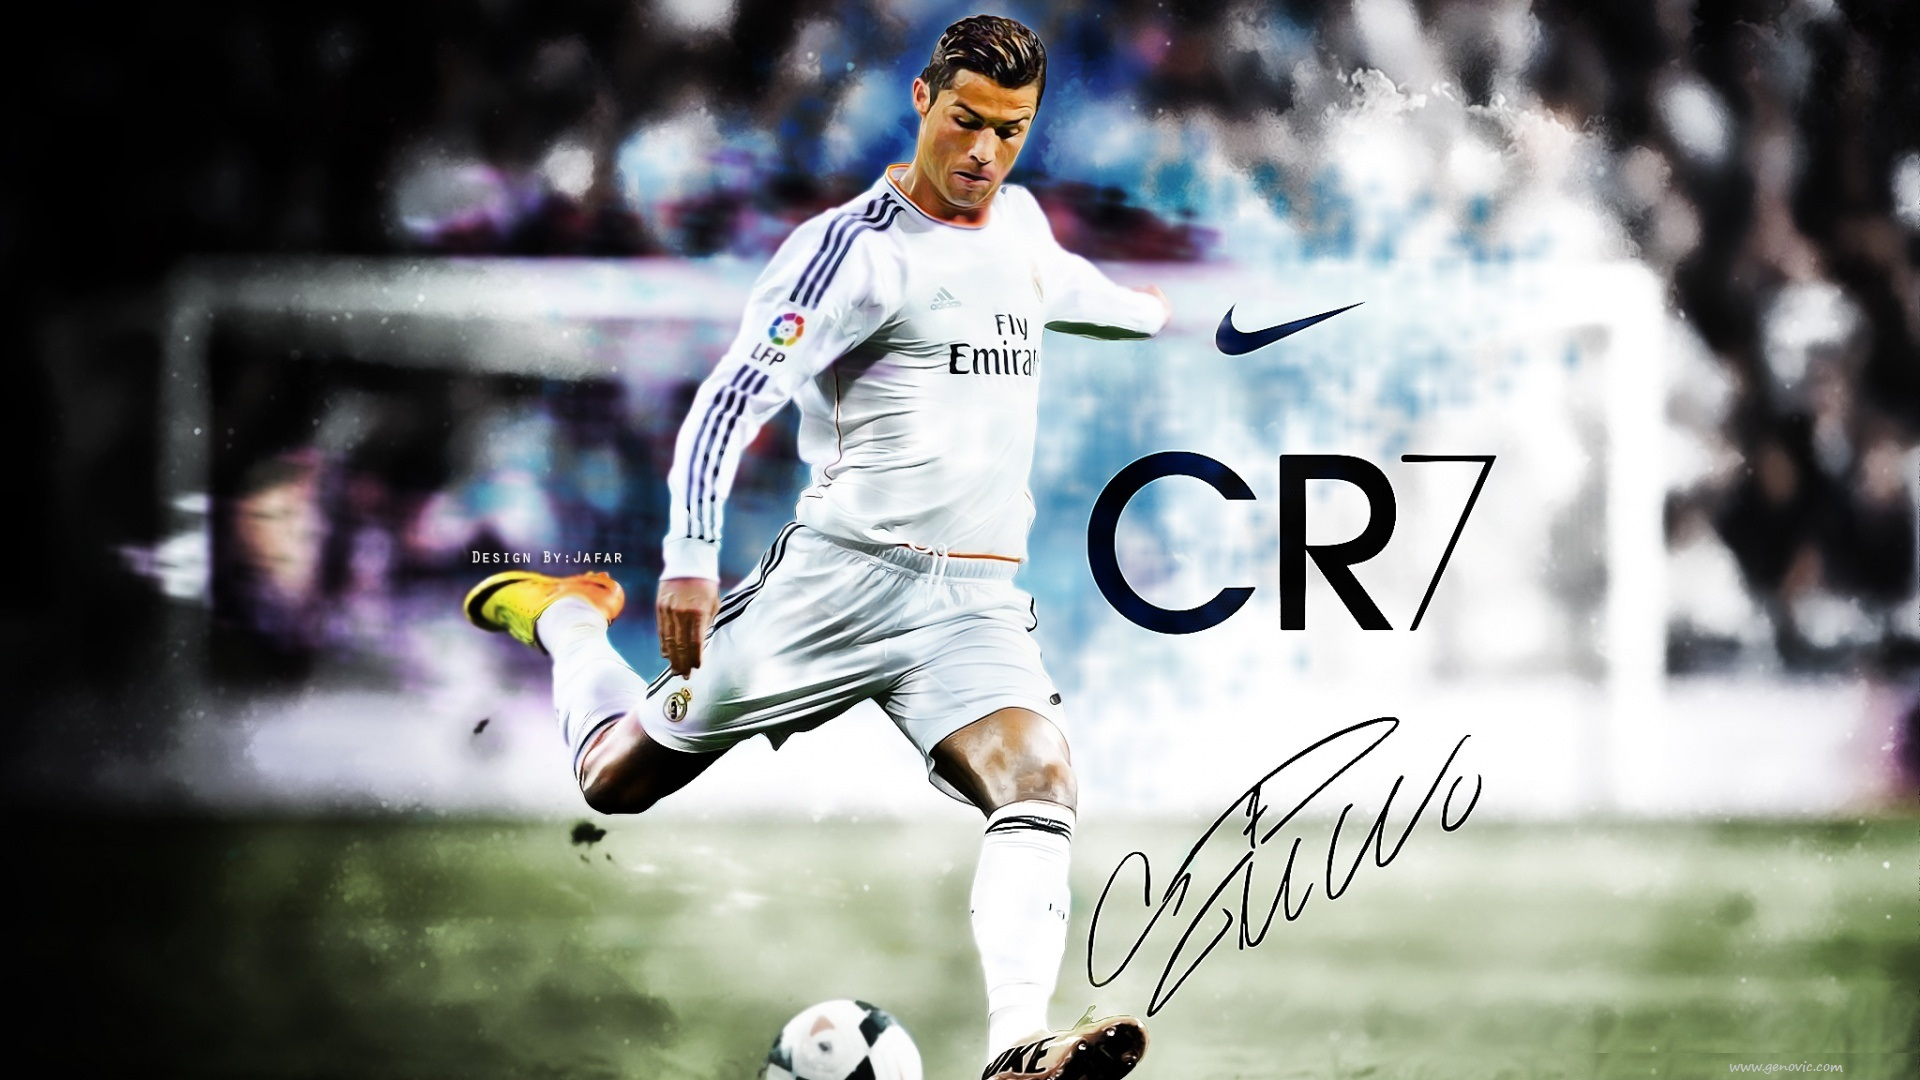 Cristiano Ronaldo Wallpapers HD 2013